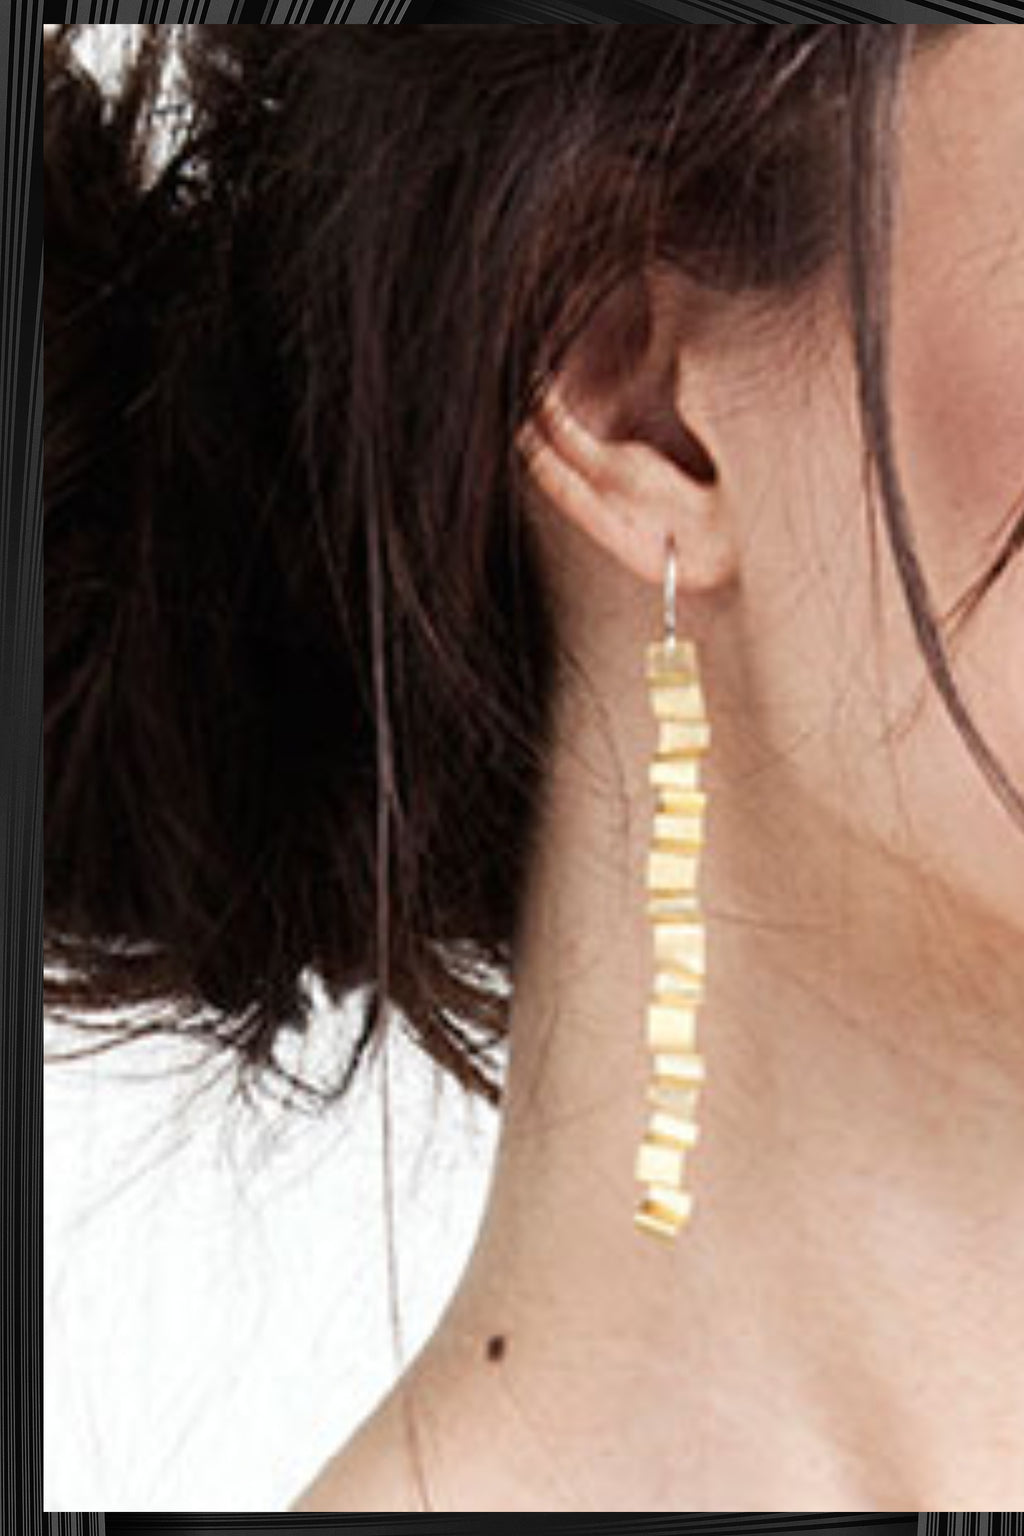 Gold Tagliatella Earrings